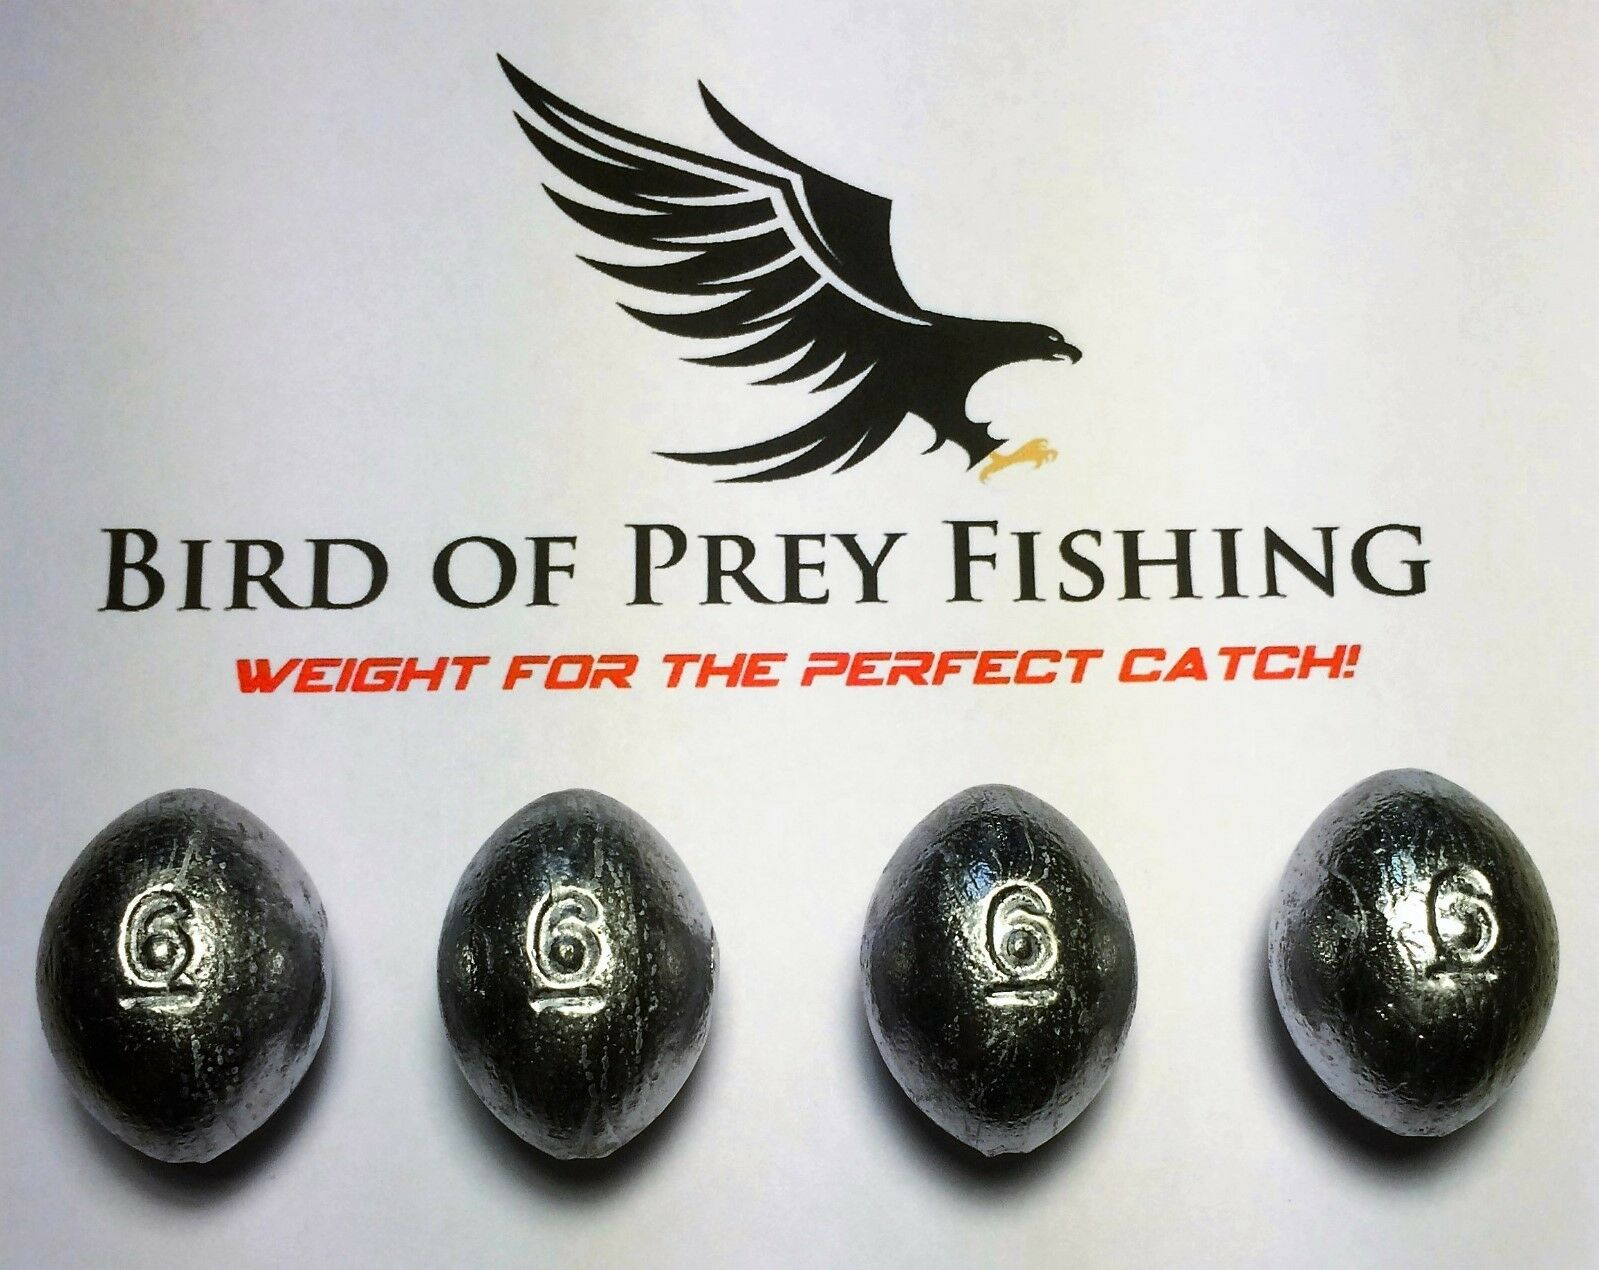 10lbs 6oz Egg Weights (27 weights) Lead Fishing Sinkers Bulk   order now with big discount & free delivery